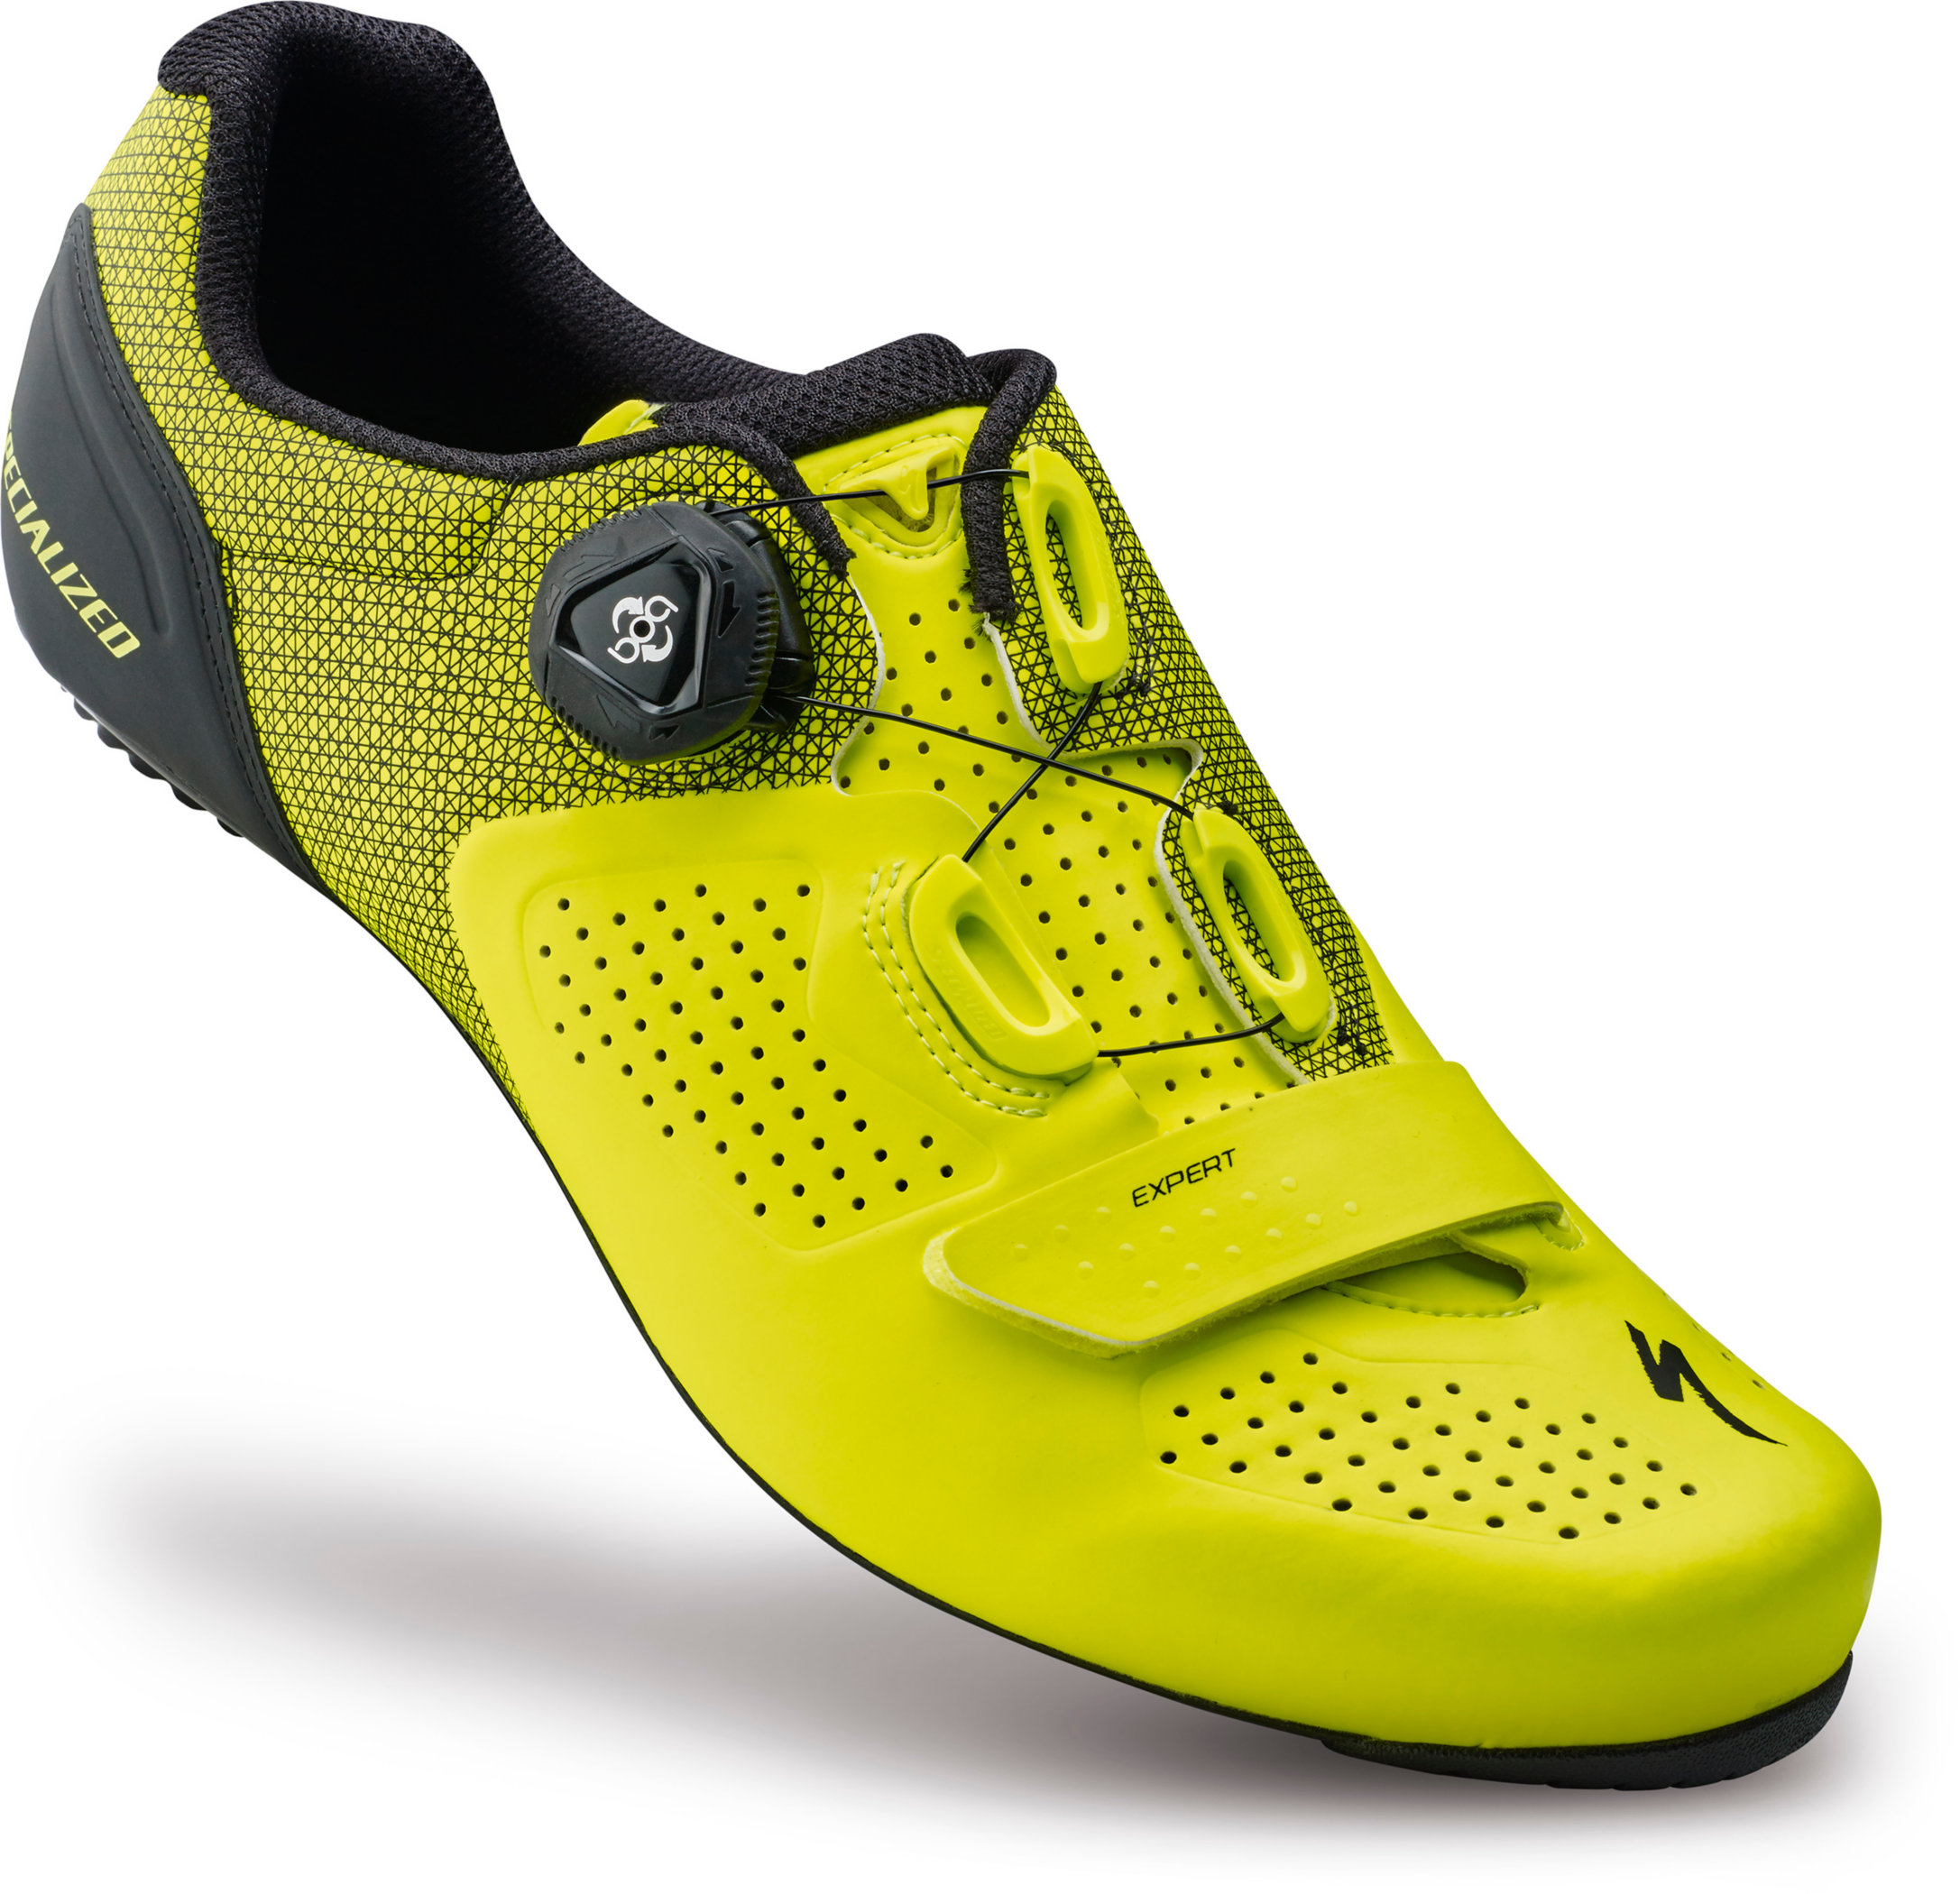 SPECIALIZED EXPERT RD SHOE NEON YEL 42/9 - Bikedreams & Dustbikes